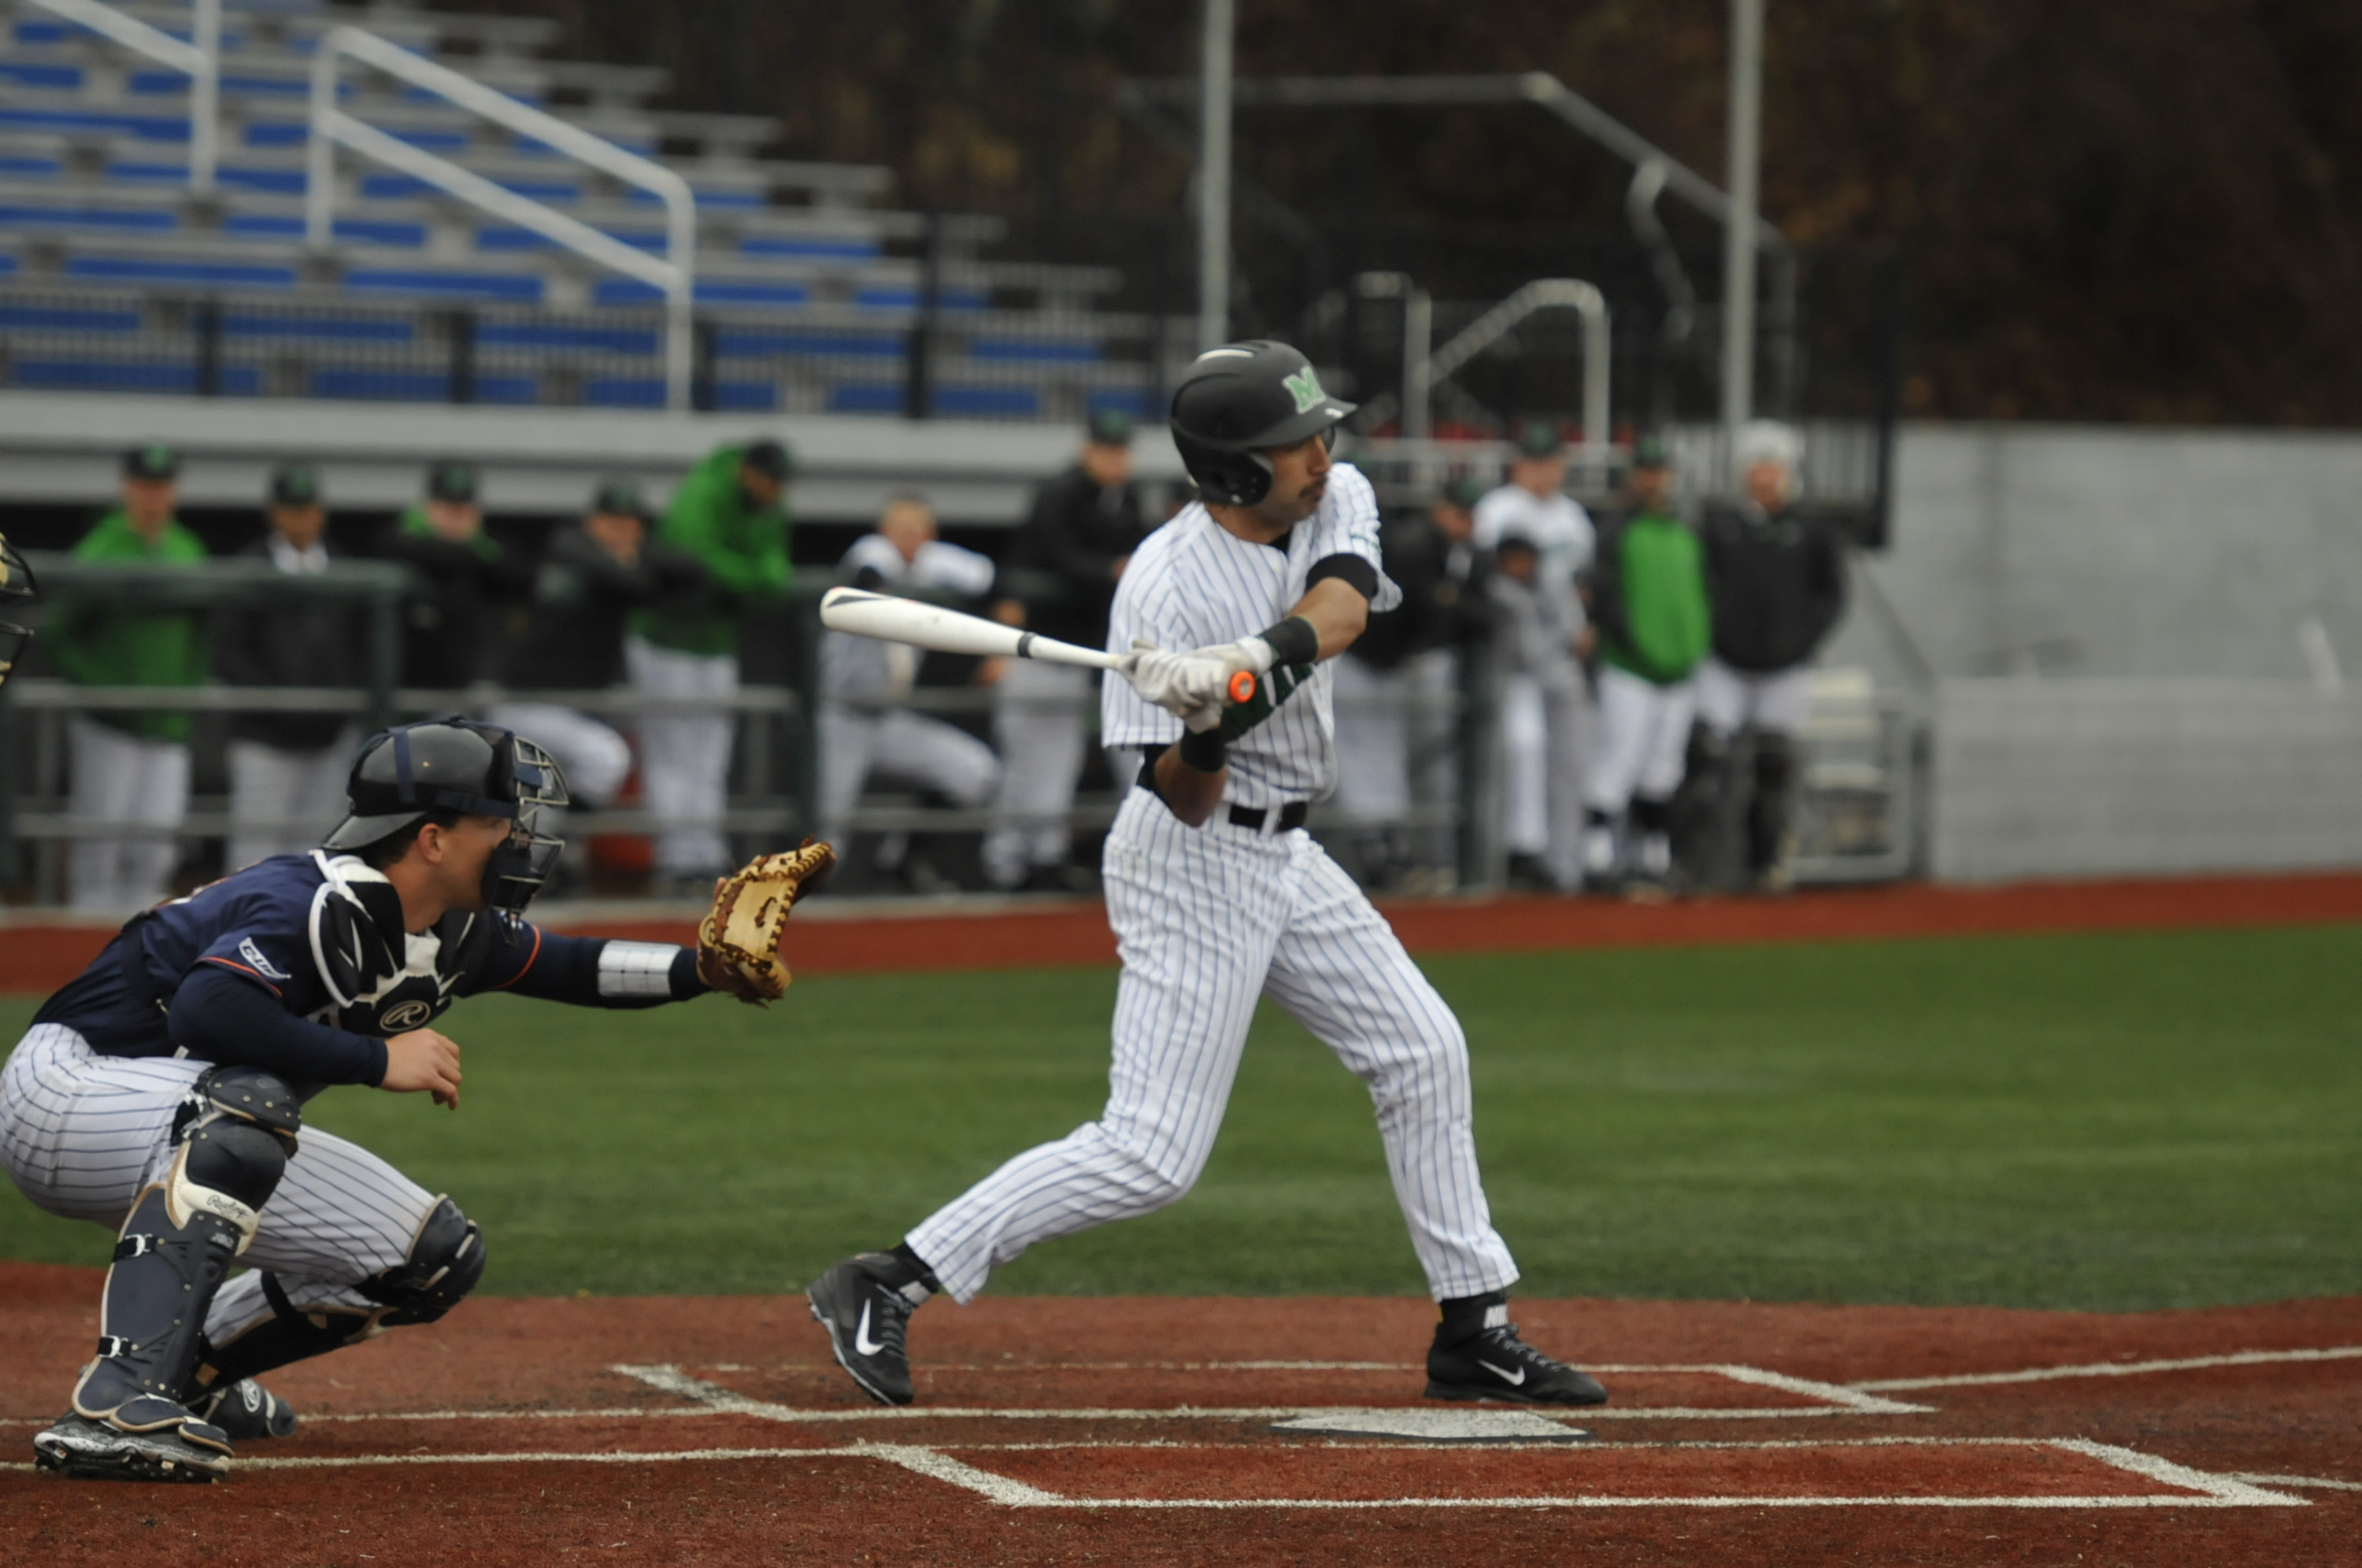 Junior DJ Gee was 2-for-3 with a run